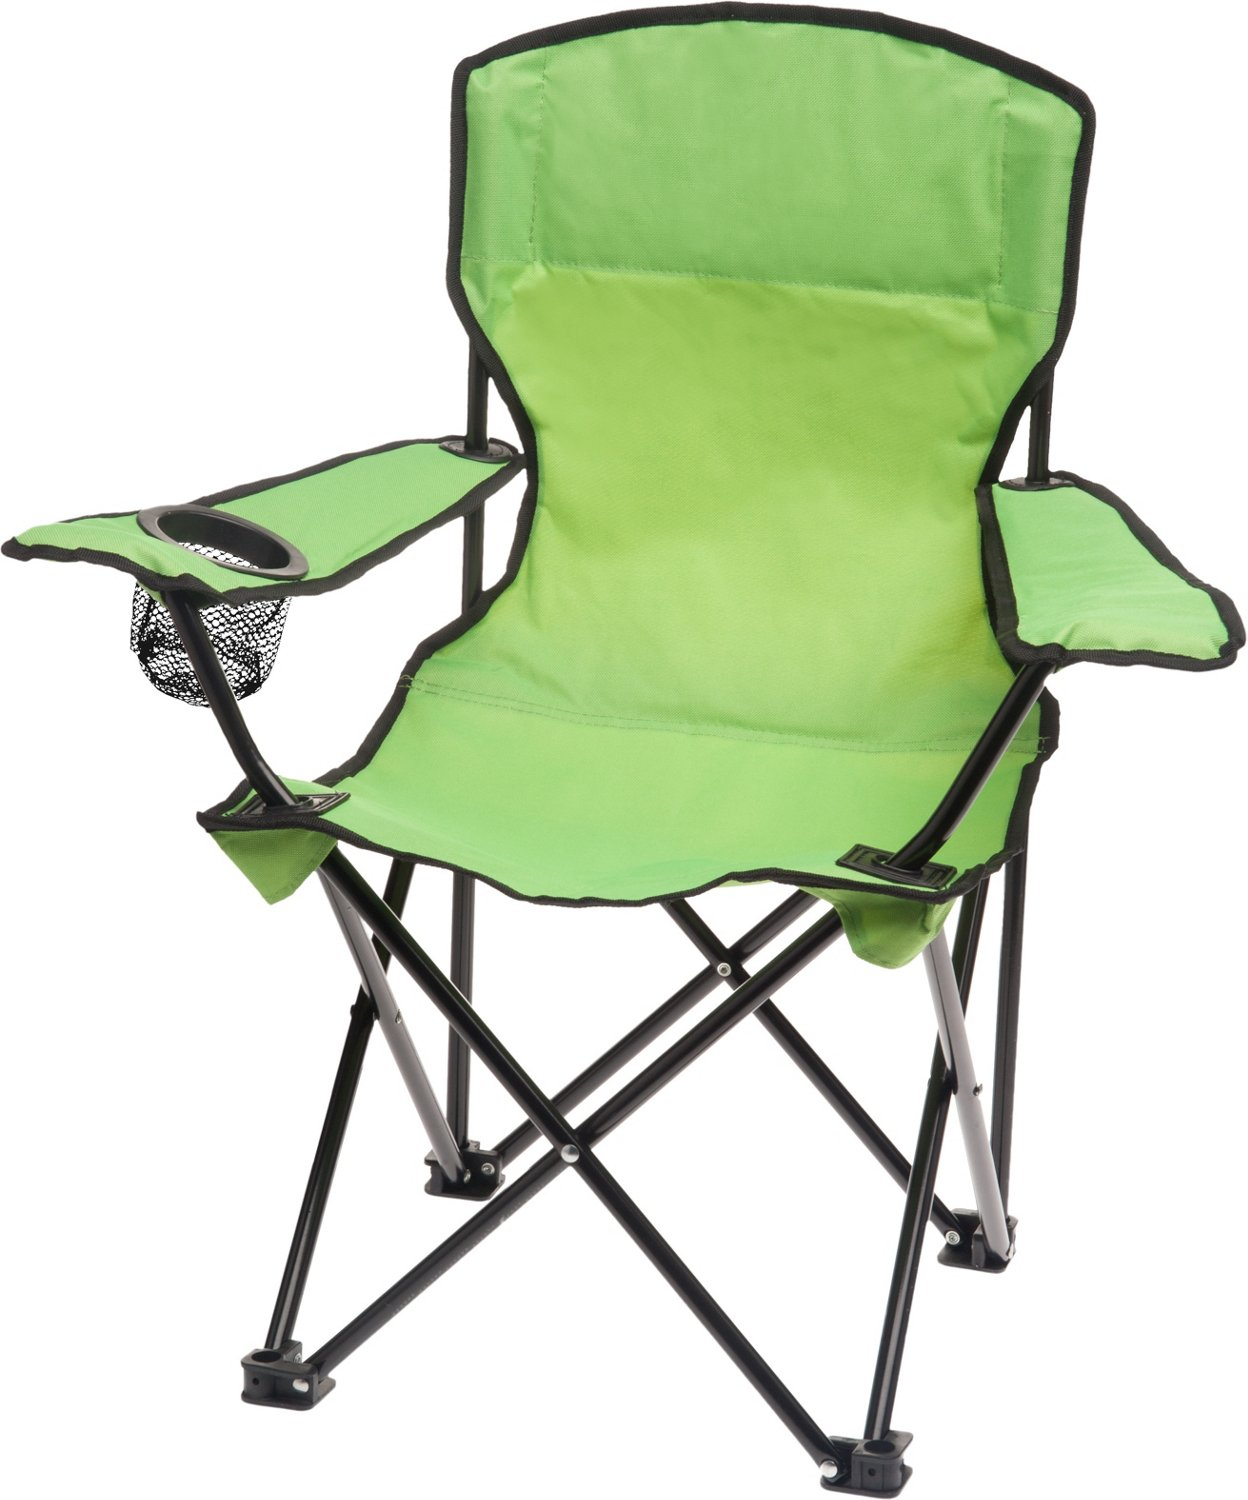 bunjo bungee chair academy hon nucleus folding chairs plastic wooden fabric metal sports outdoors kids logo armchair